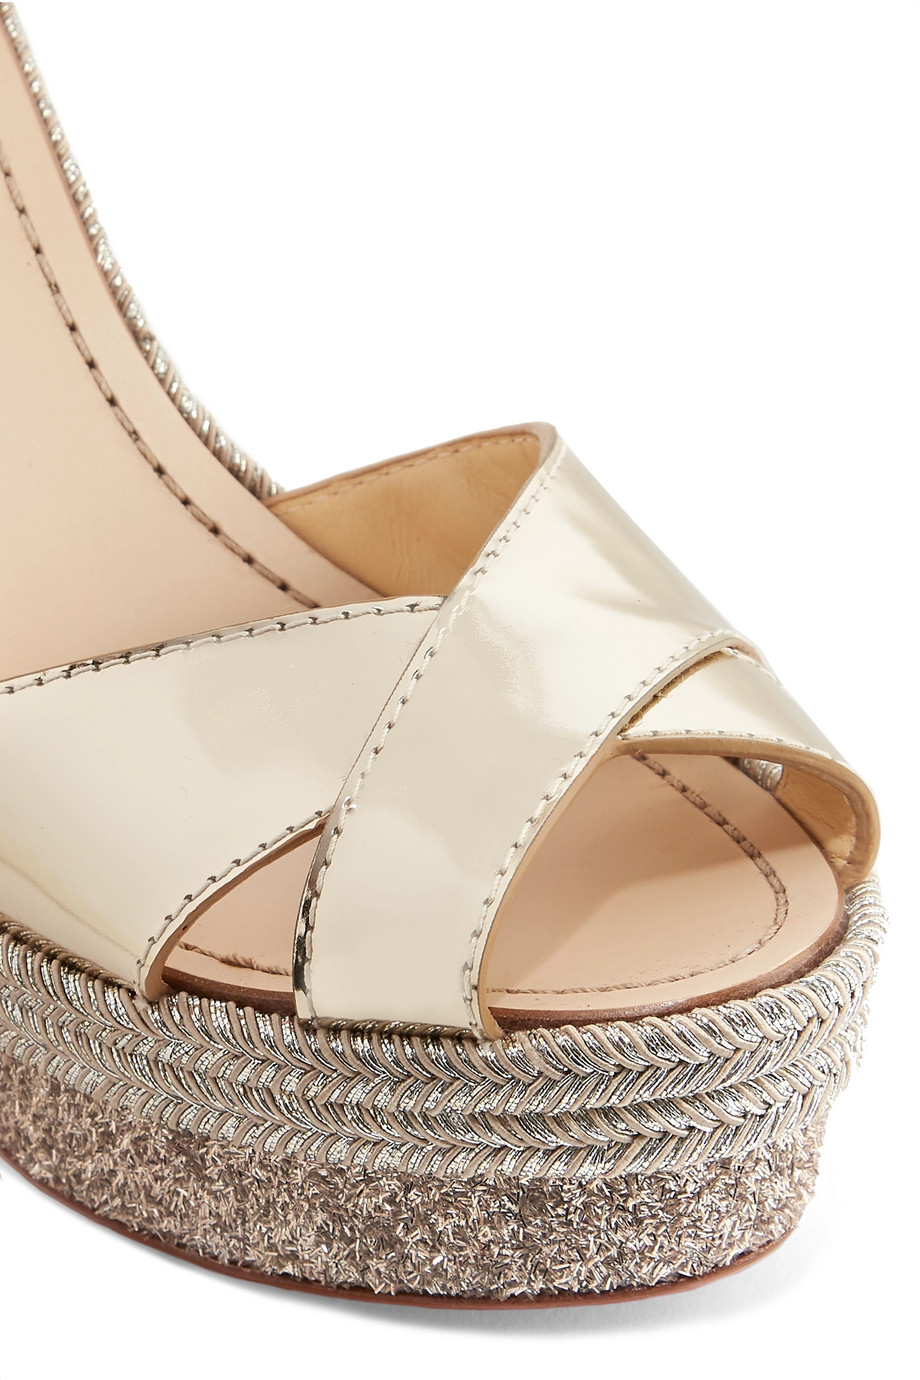 b0f70434131 Christian Louboutin Almeria 120 leather espadrille wedge sandals